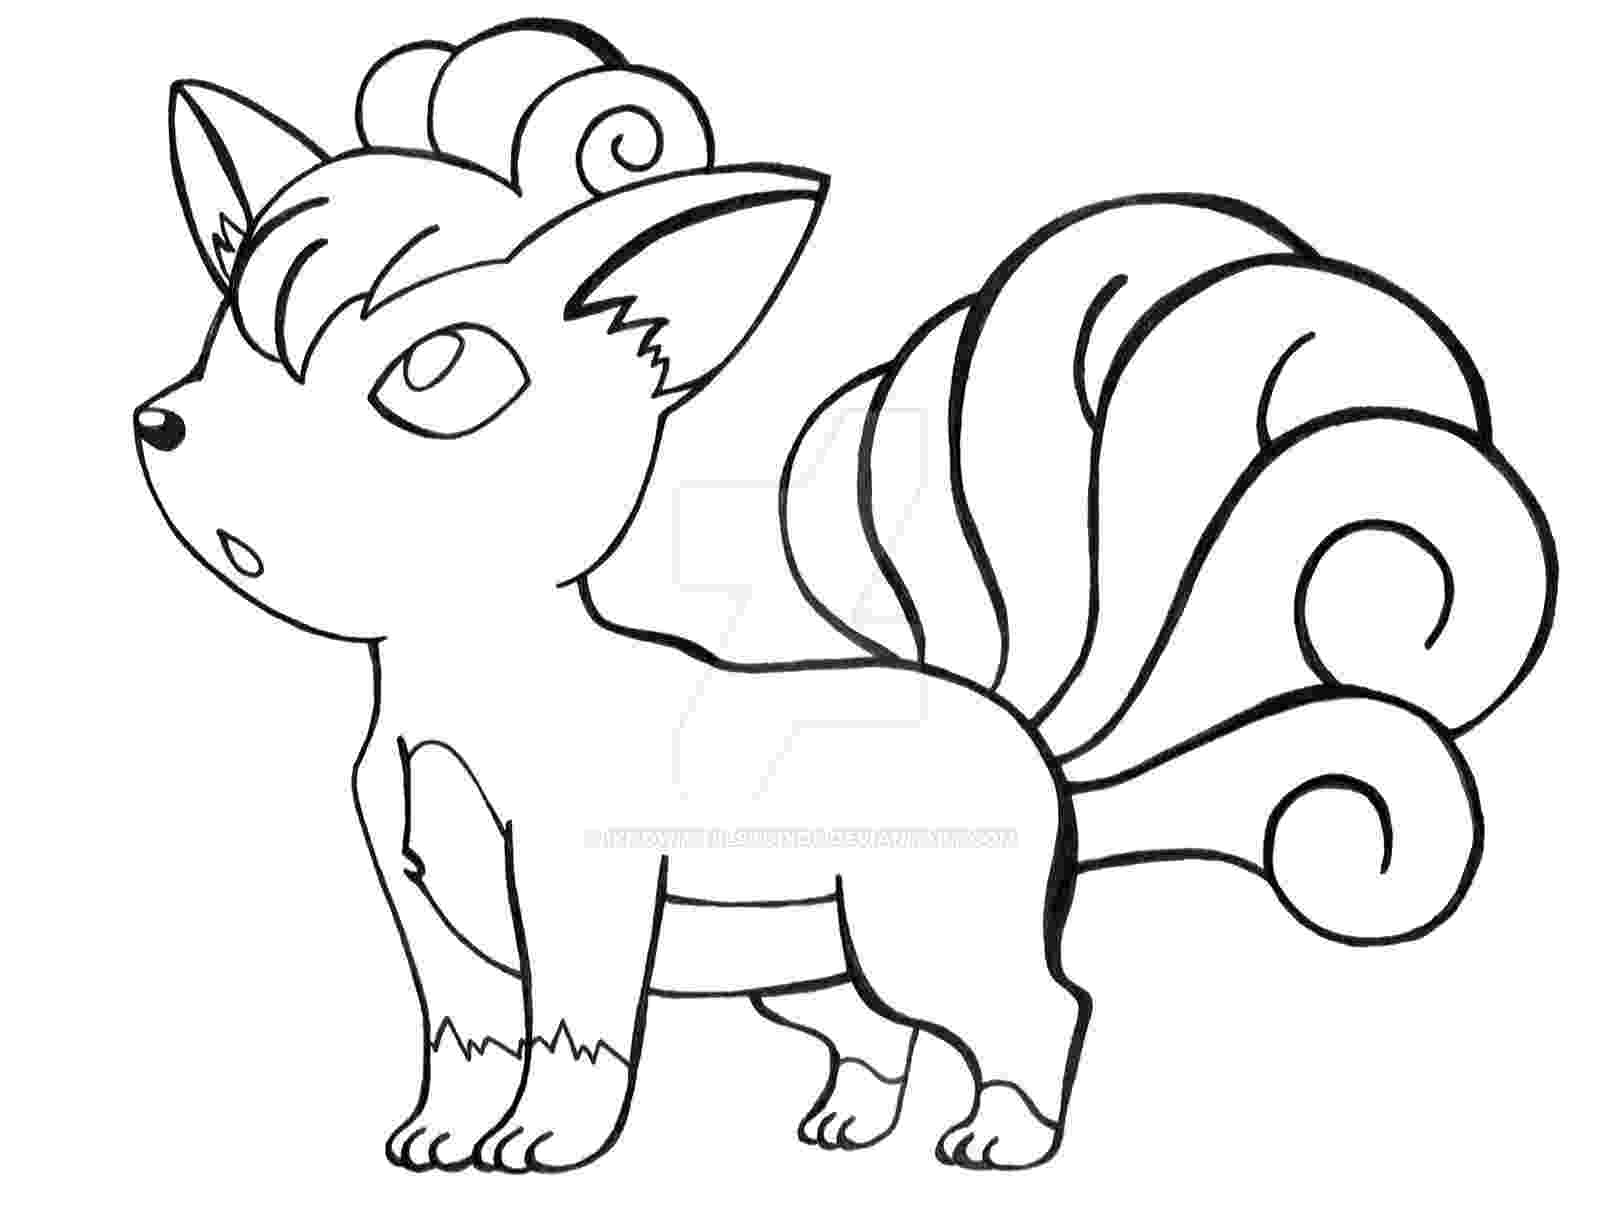 vulpix coloring pages vulpix coloring pages download and print for free vulpix pages coloring